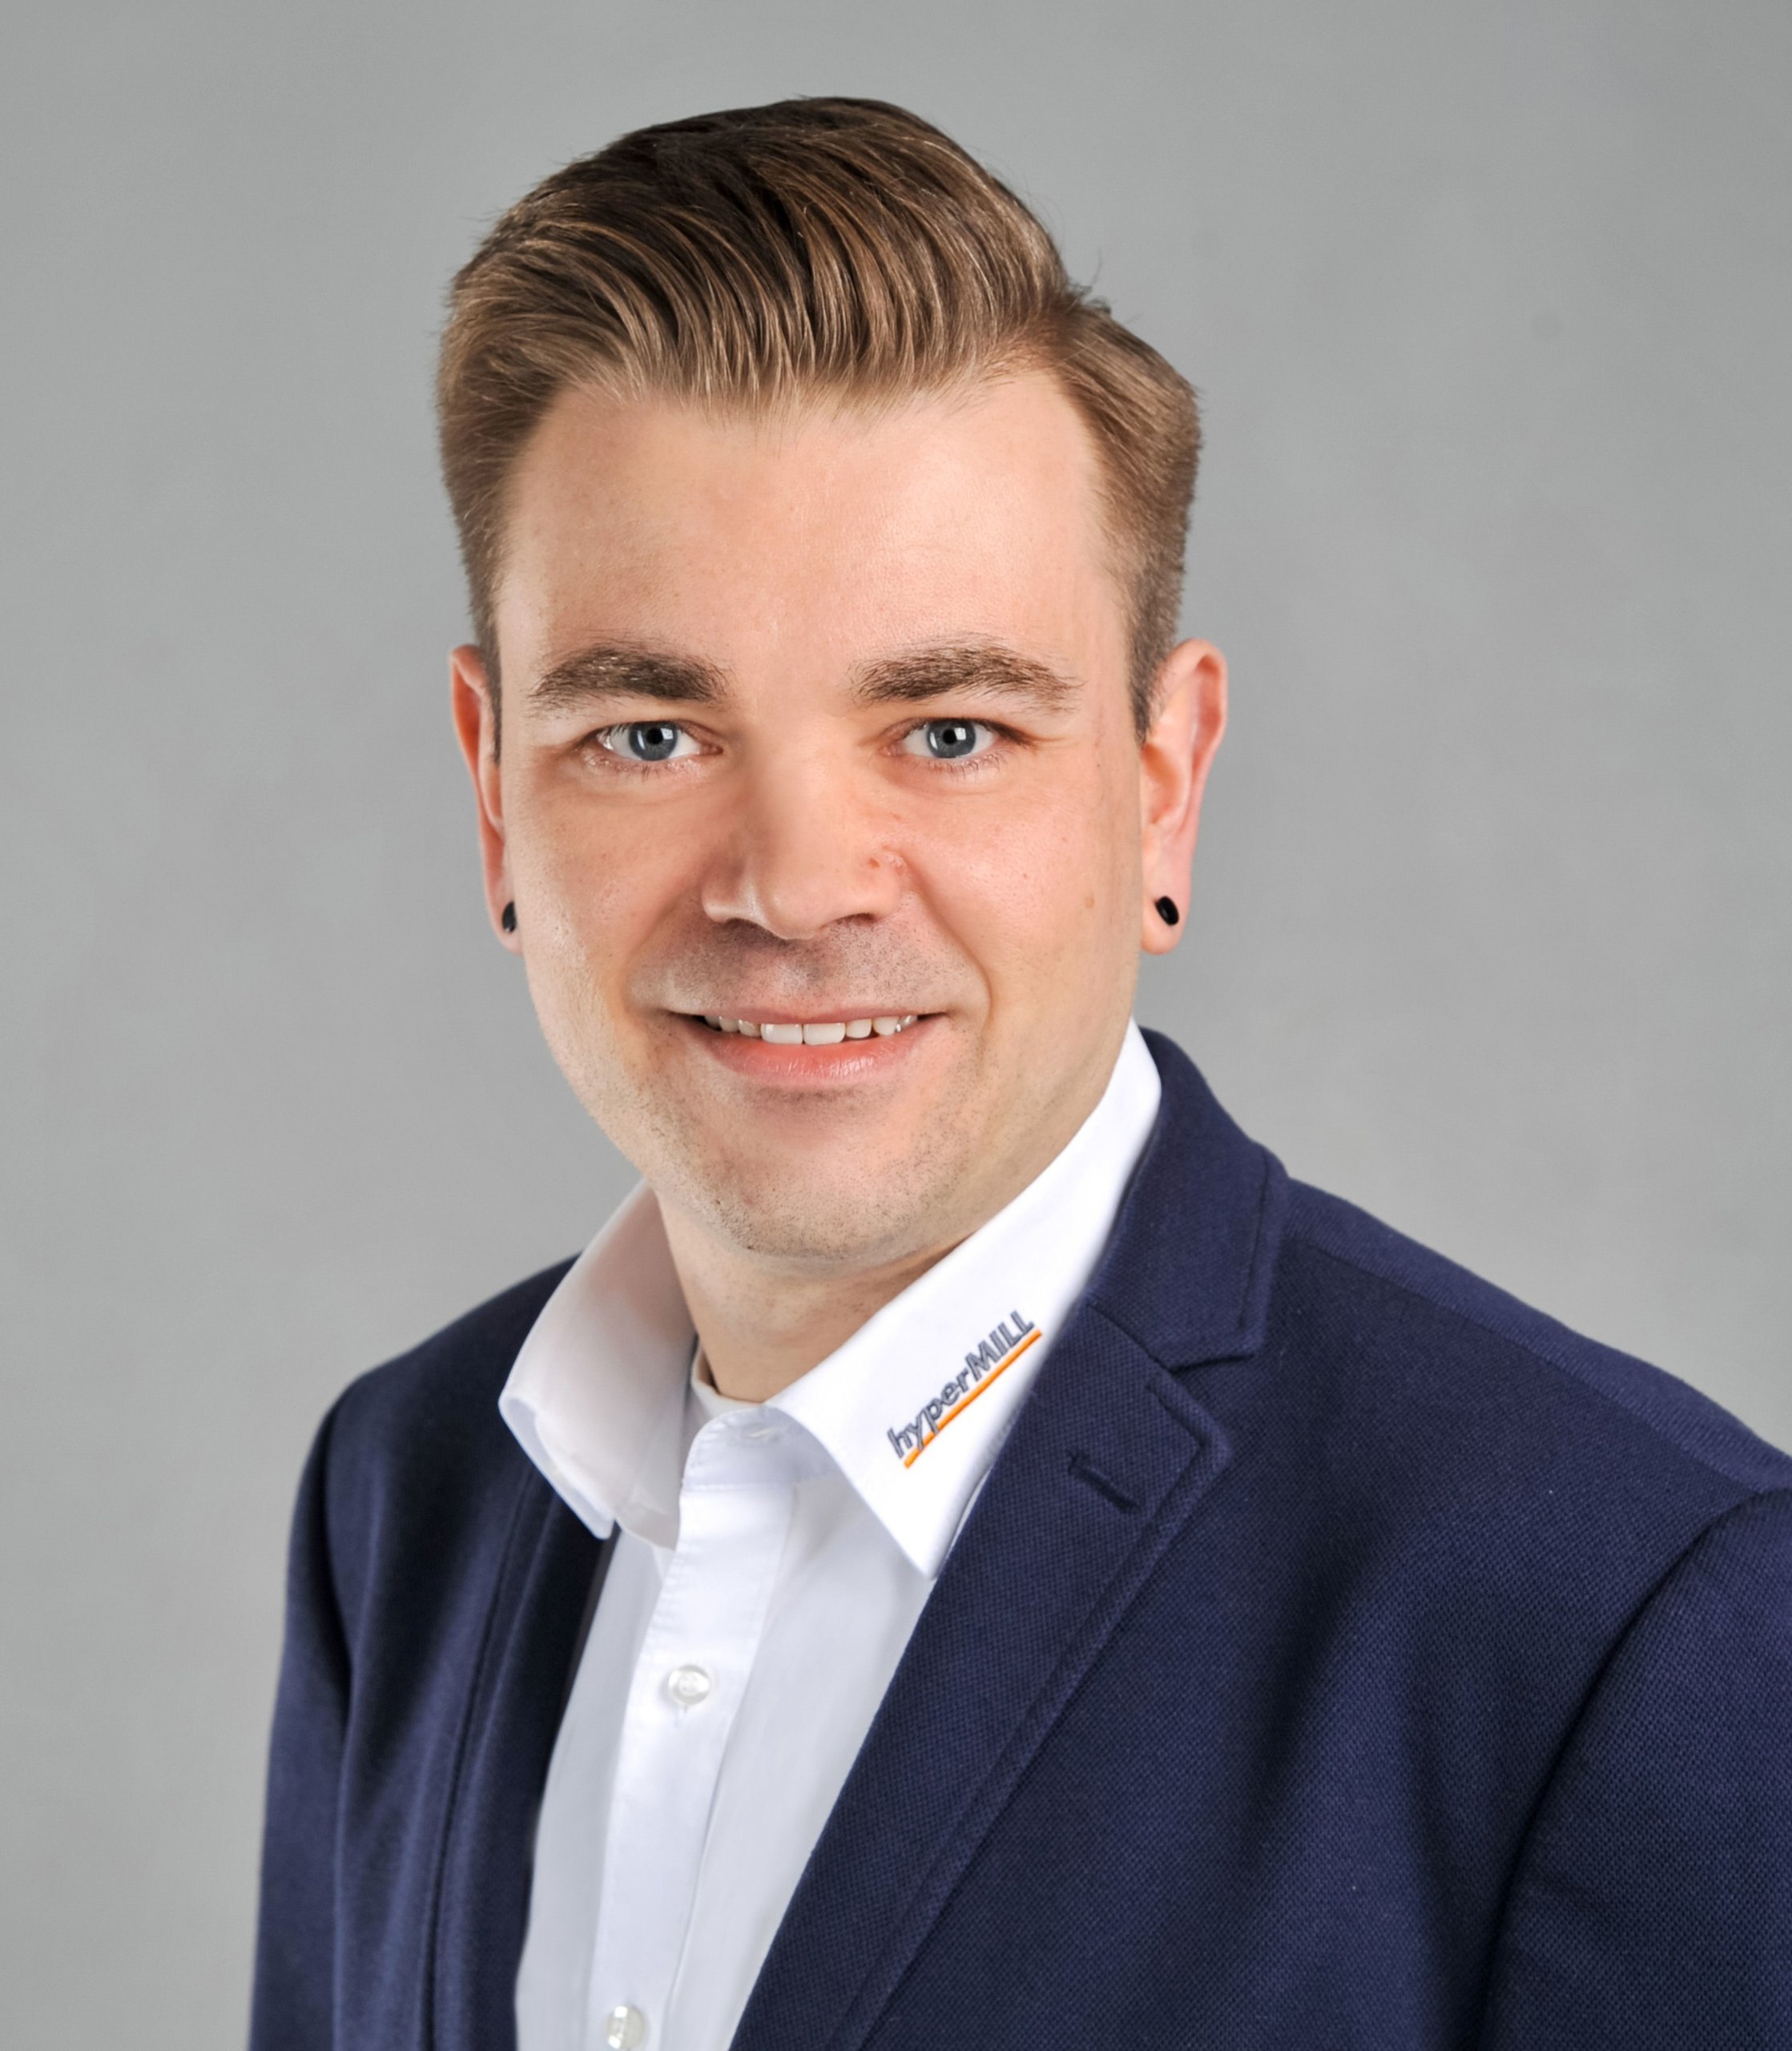 Rico Müller, Project Manager for CAD/CAM automation at Open Mind Technologies AG, Weßling: